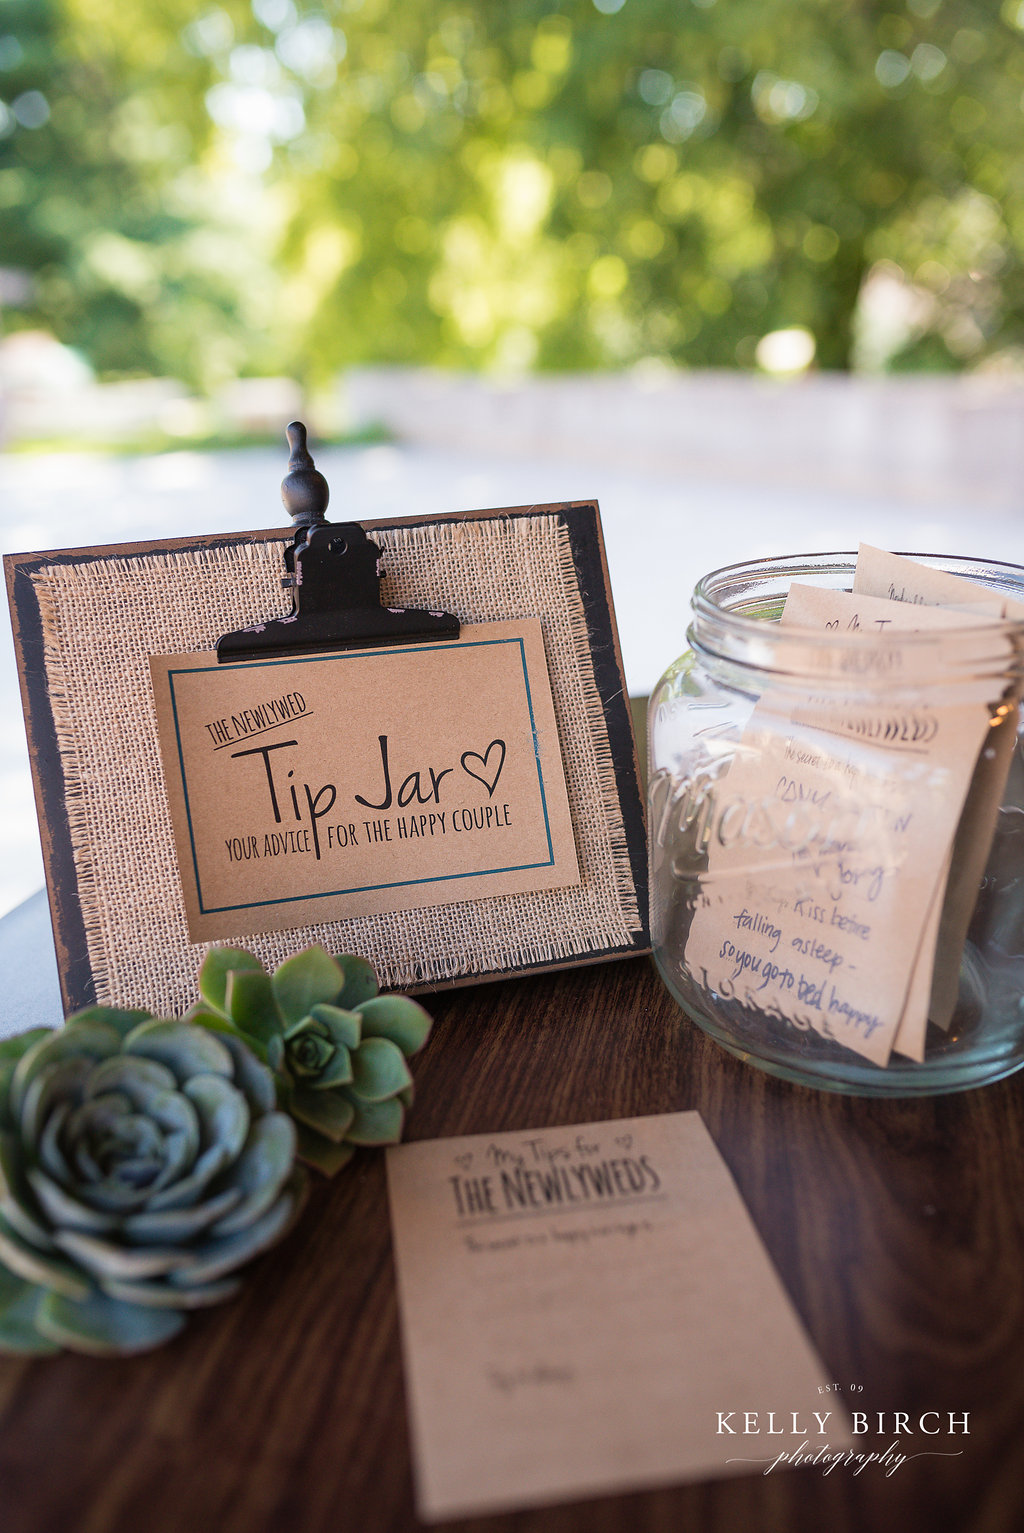 Wedding succulents as decor - wedding tip jar for advice for the new couple